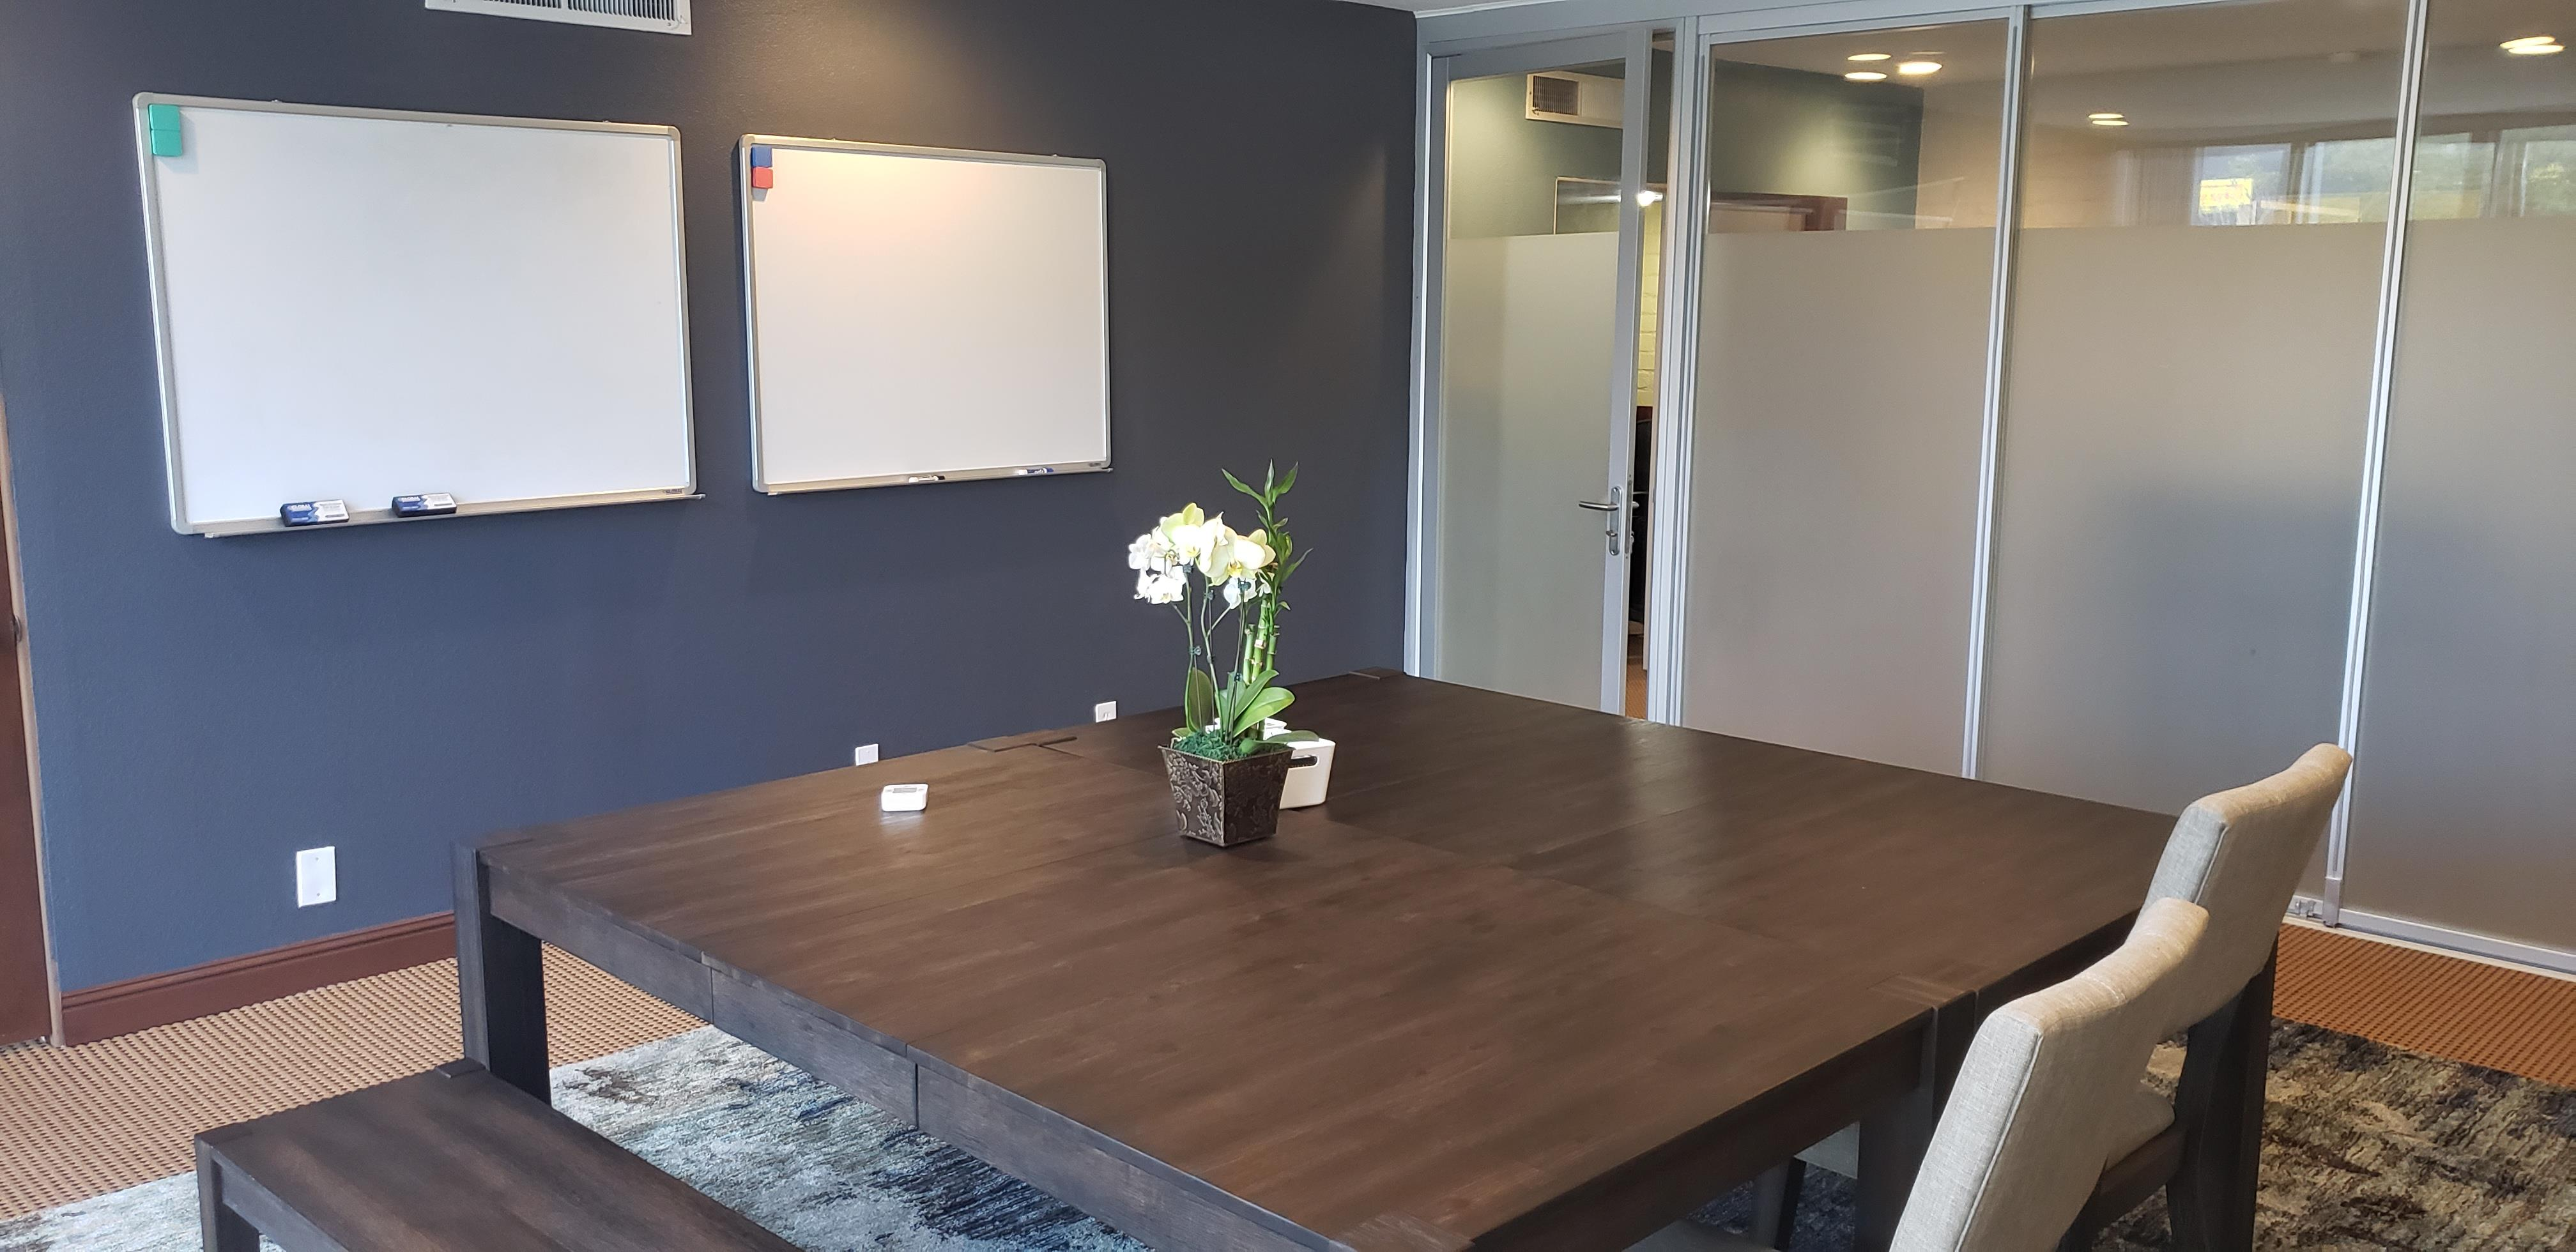 The MEG Space - Meeting Room 1